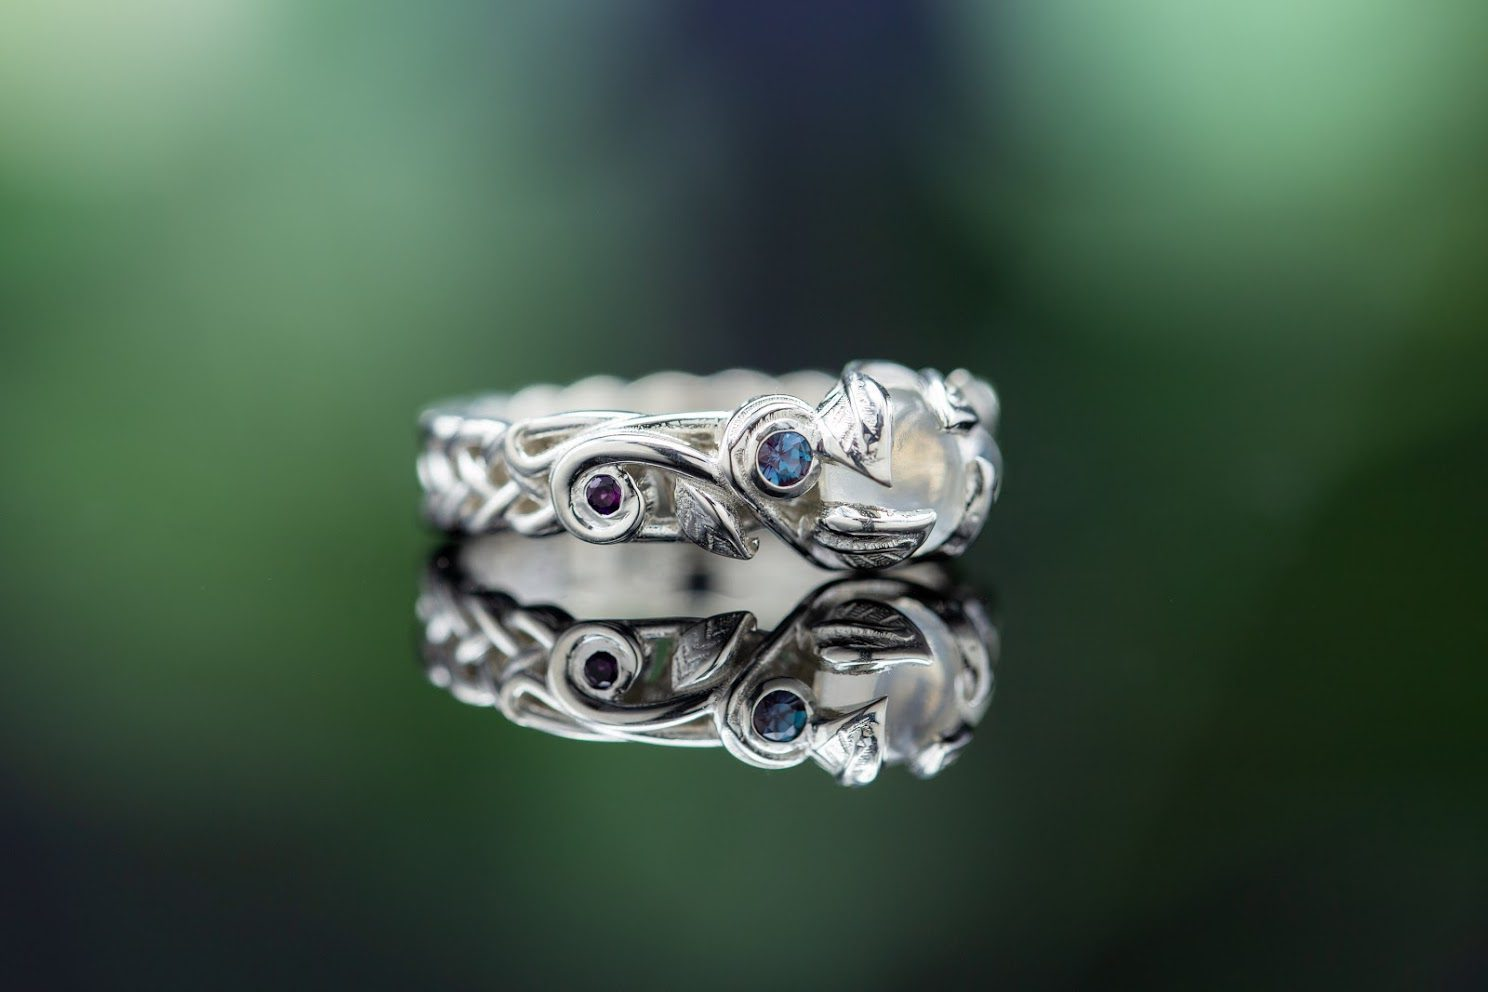 engagement ring settings - decorative leaf prongs on a moonstone